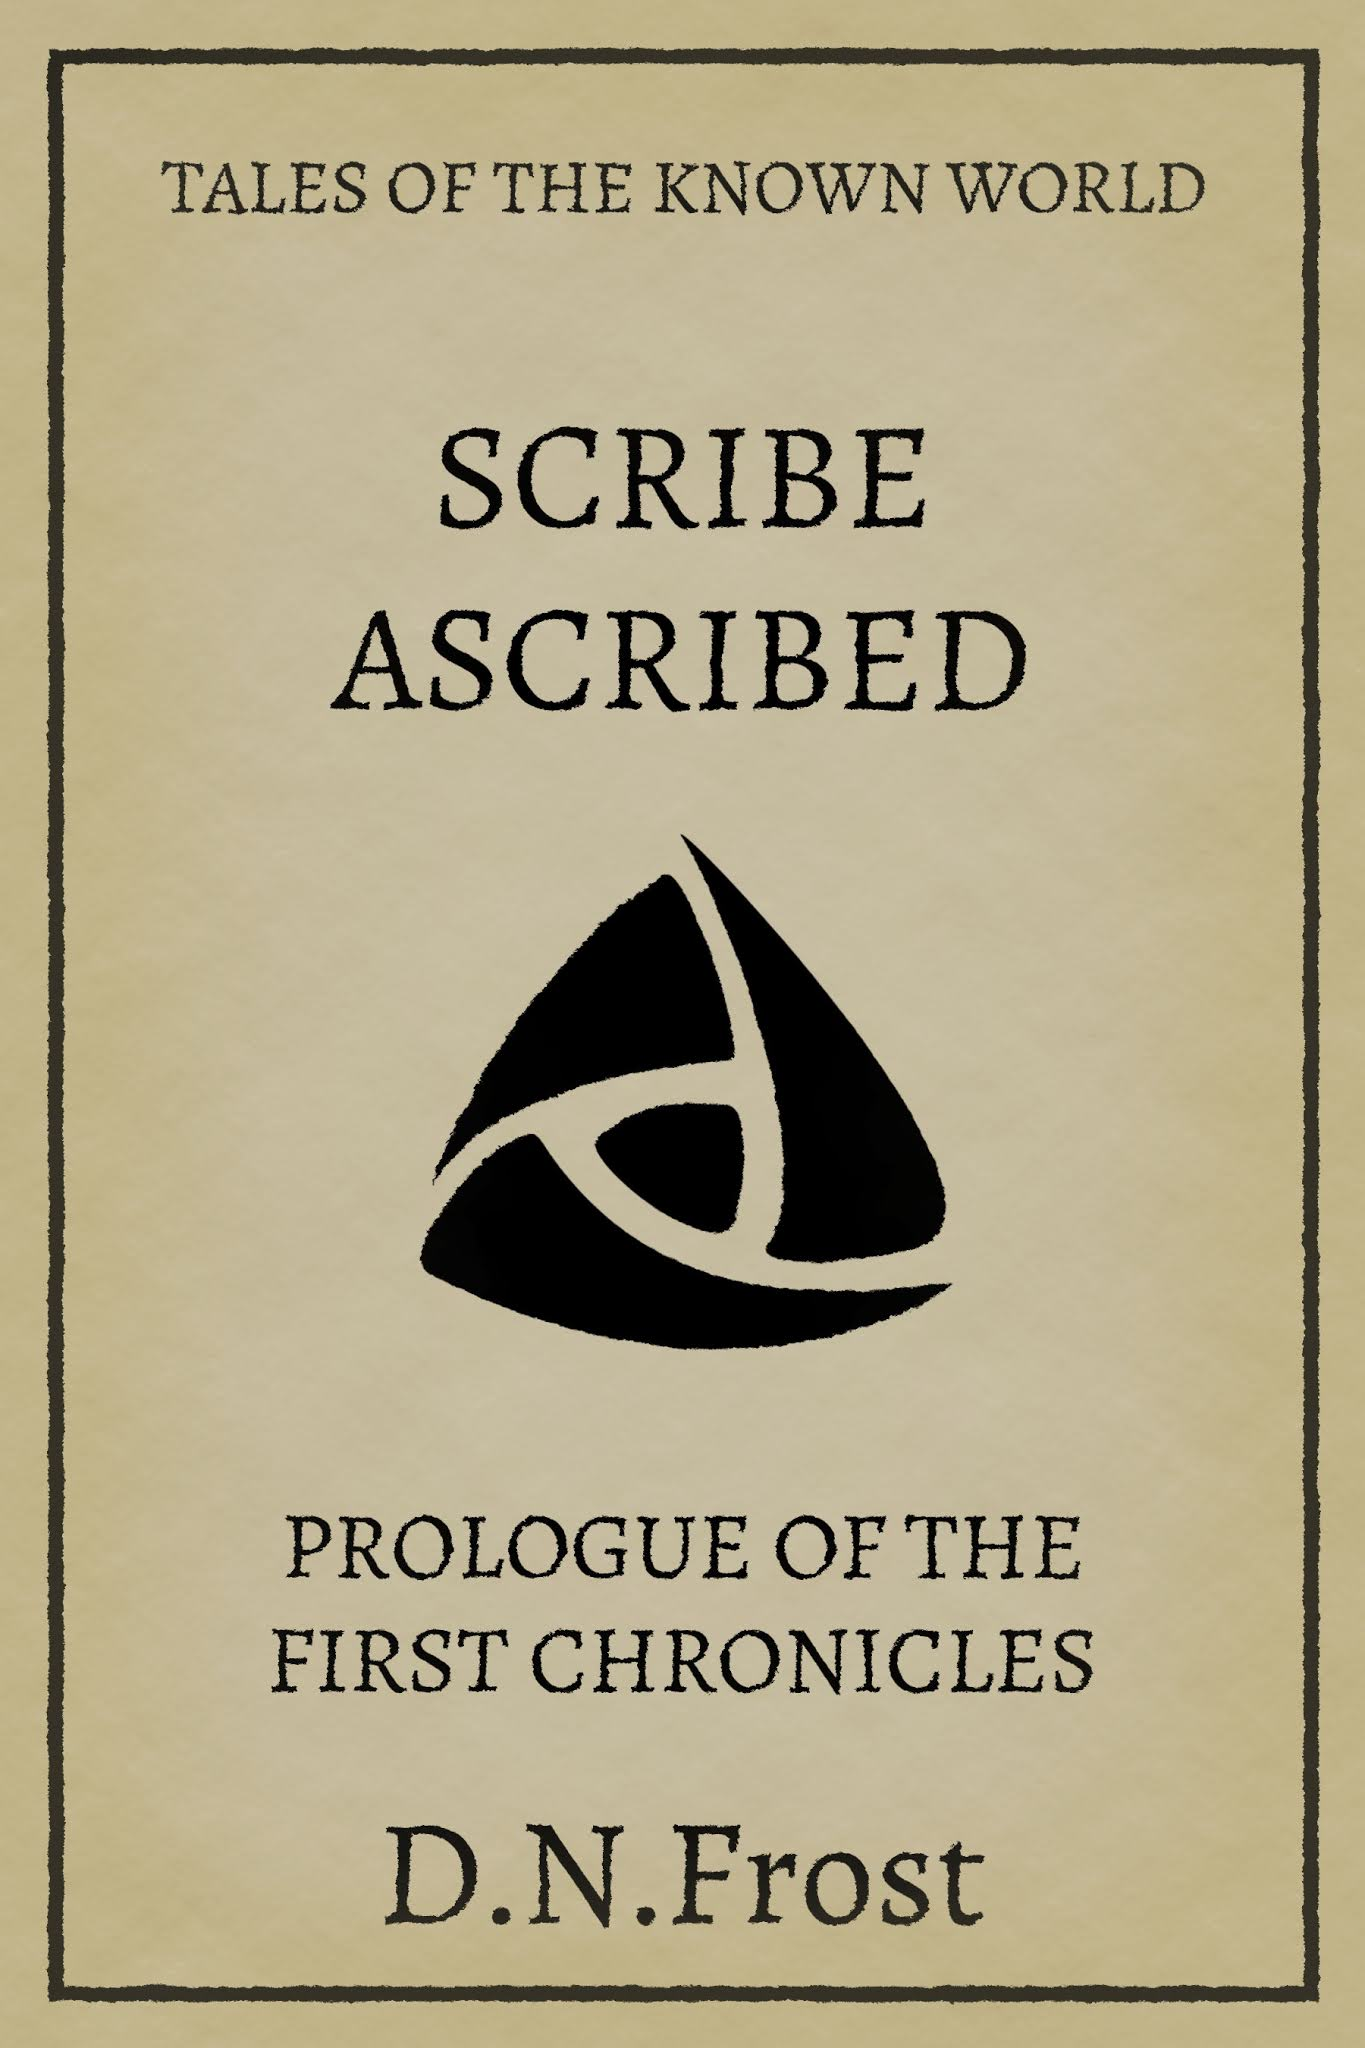 Scribe Ascribed: free prologue of the First Chronicles www.DNFrost.com/Prologue1 #TotKW An exclusive prologue by D.N.Frost @DNFrost13 Part of a series.